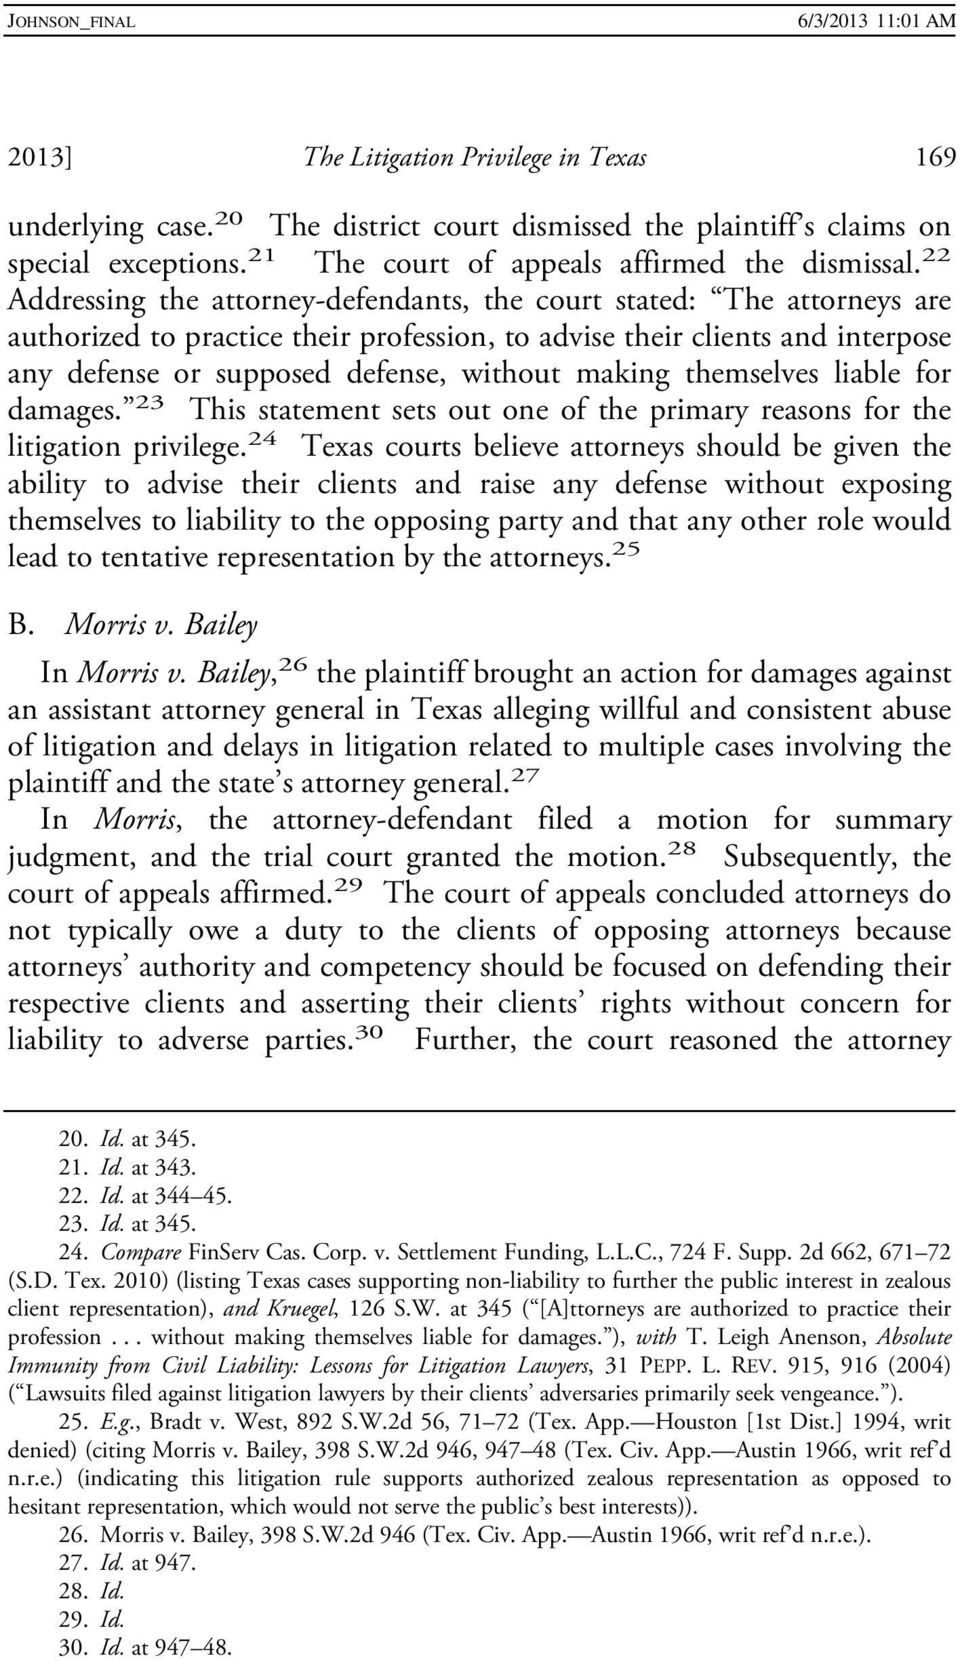 making themselves liable for damages. 23 This statement sets out one of the primary reasons for the litigation privilege.